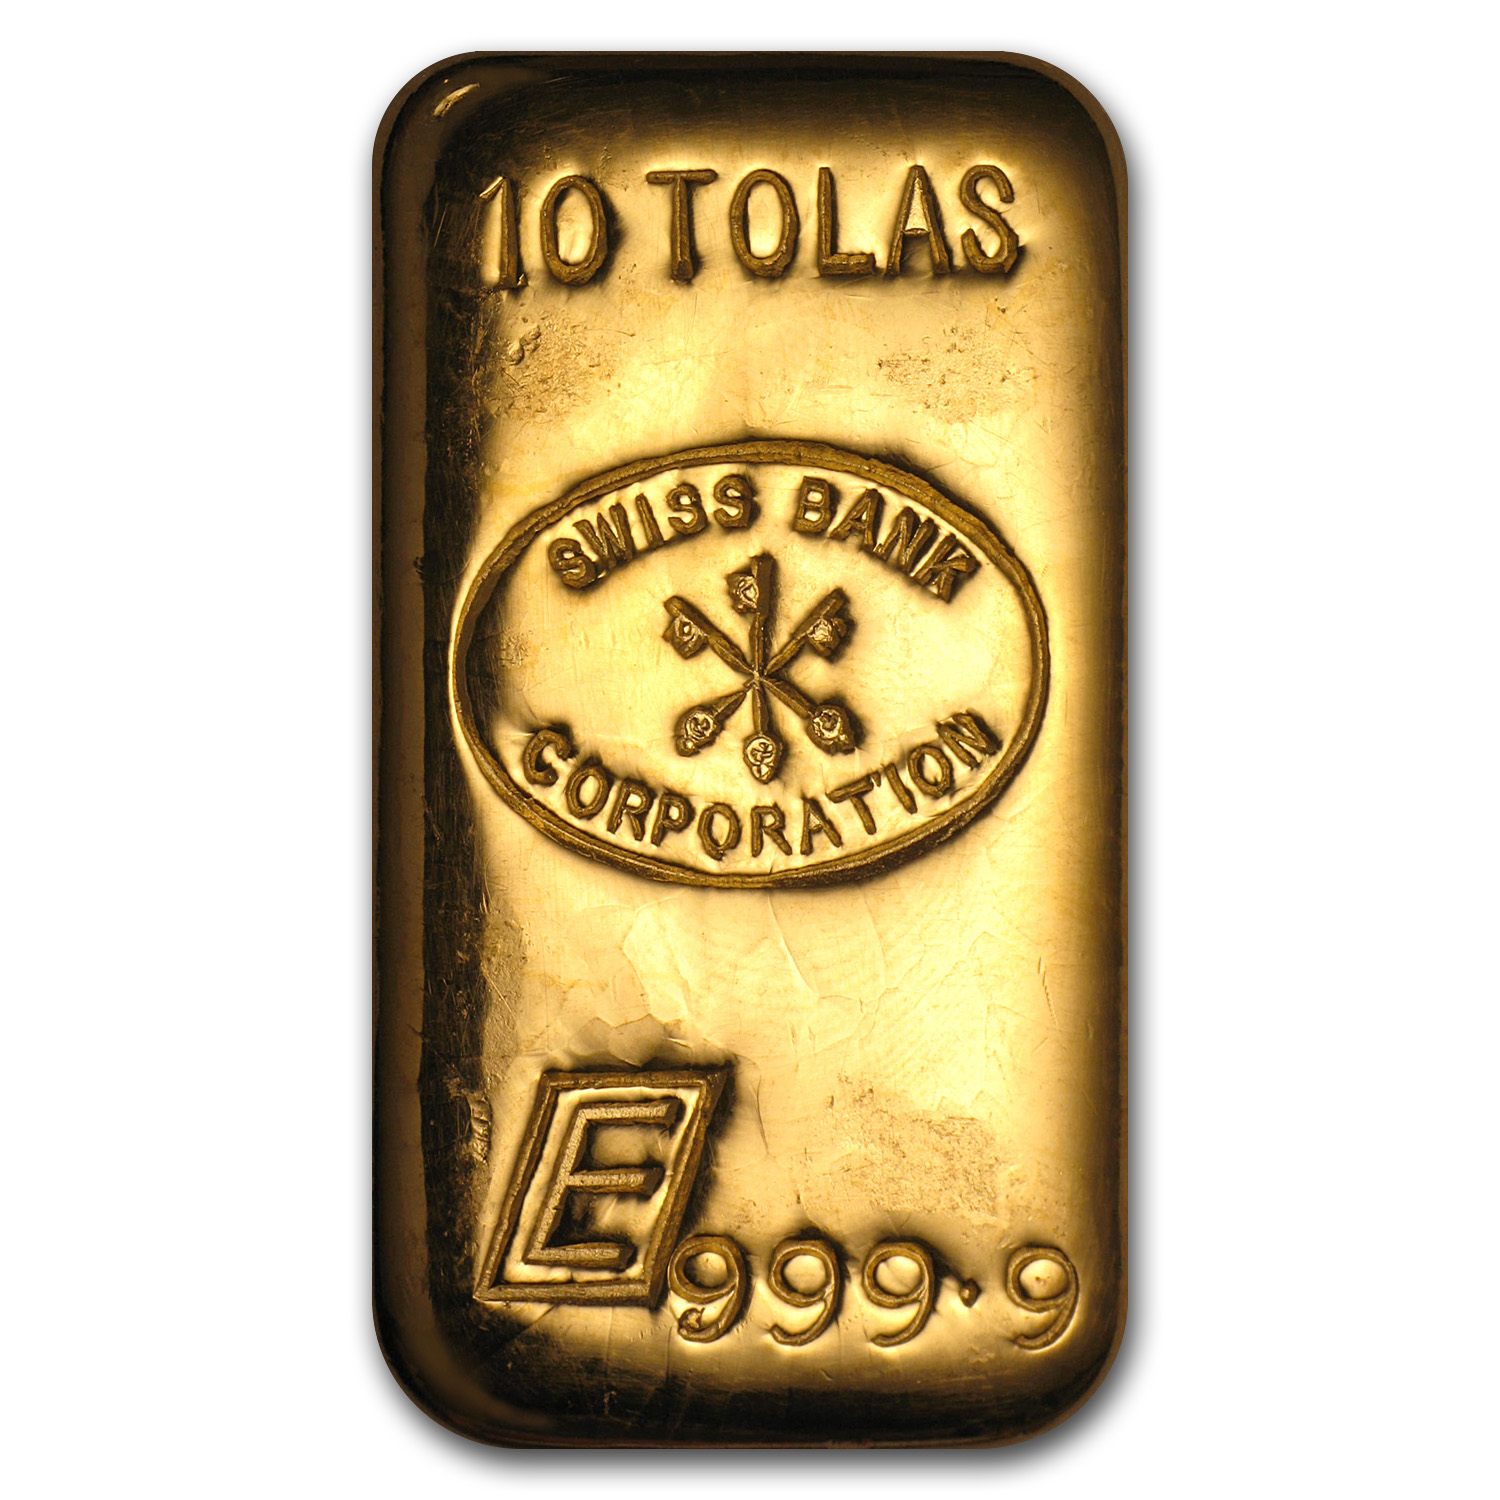 10 Tolas Gold Bar - Engelhard-Swiss Bank Corporation (3.75 oz)